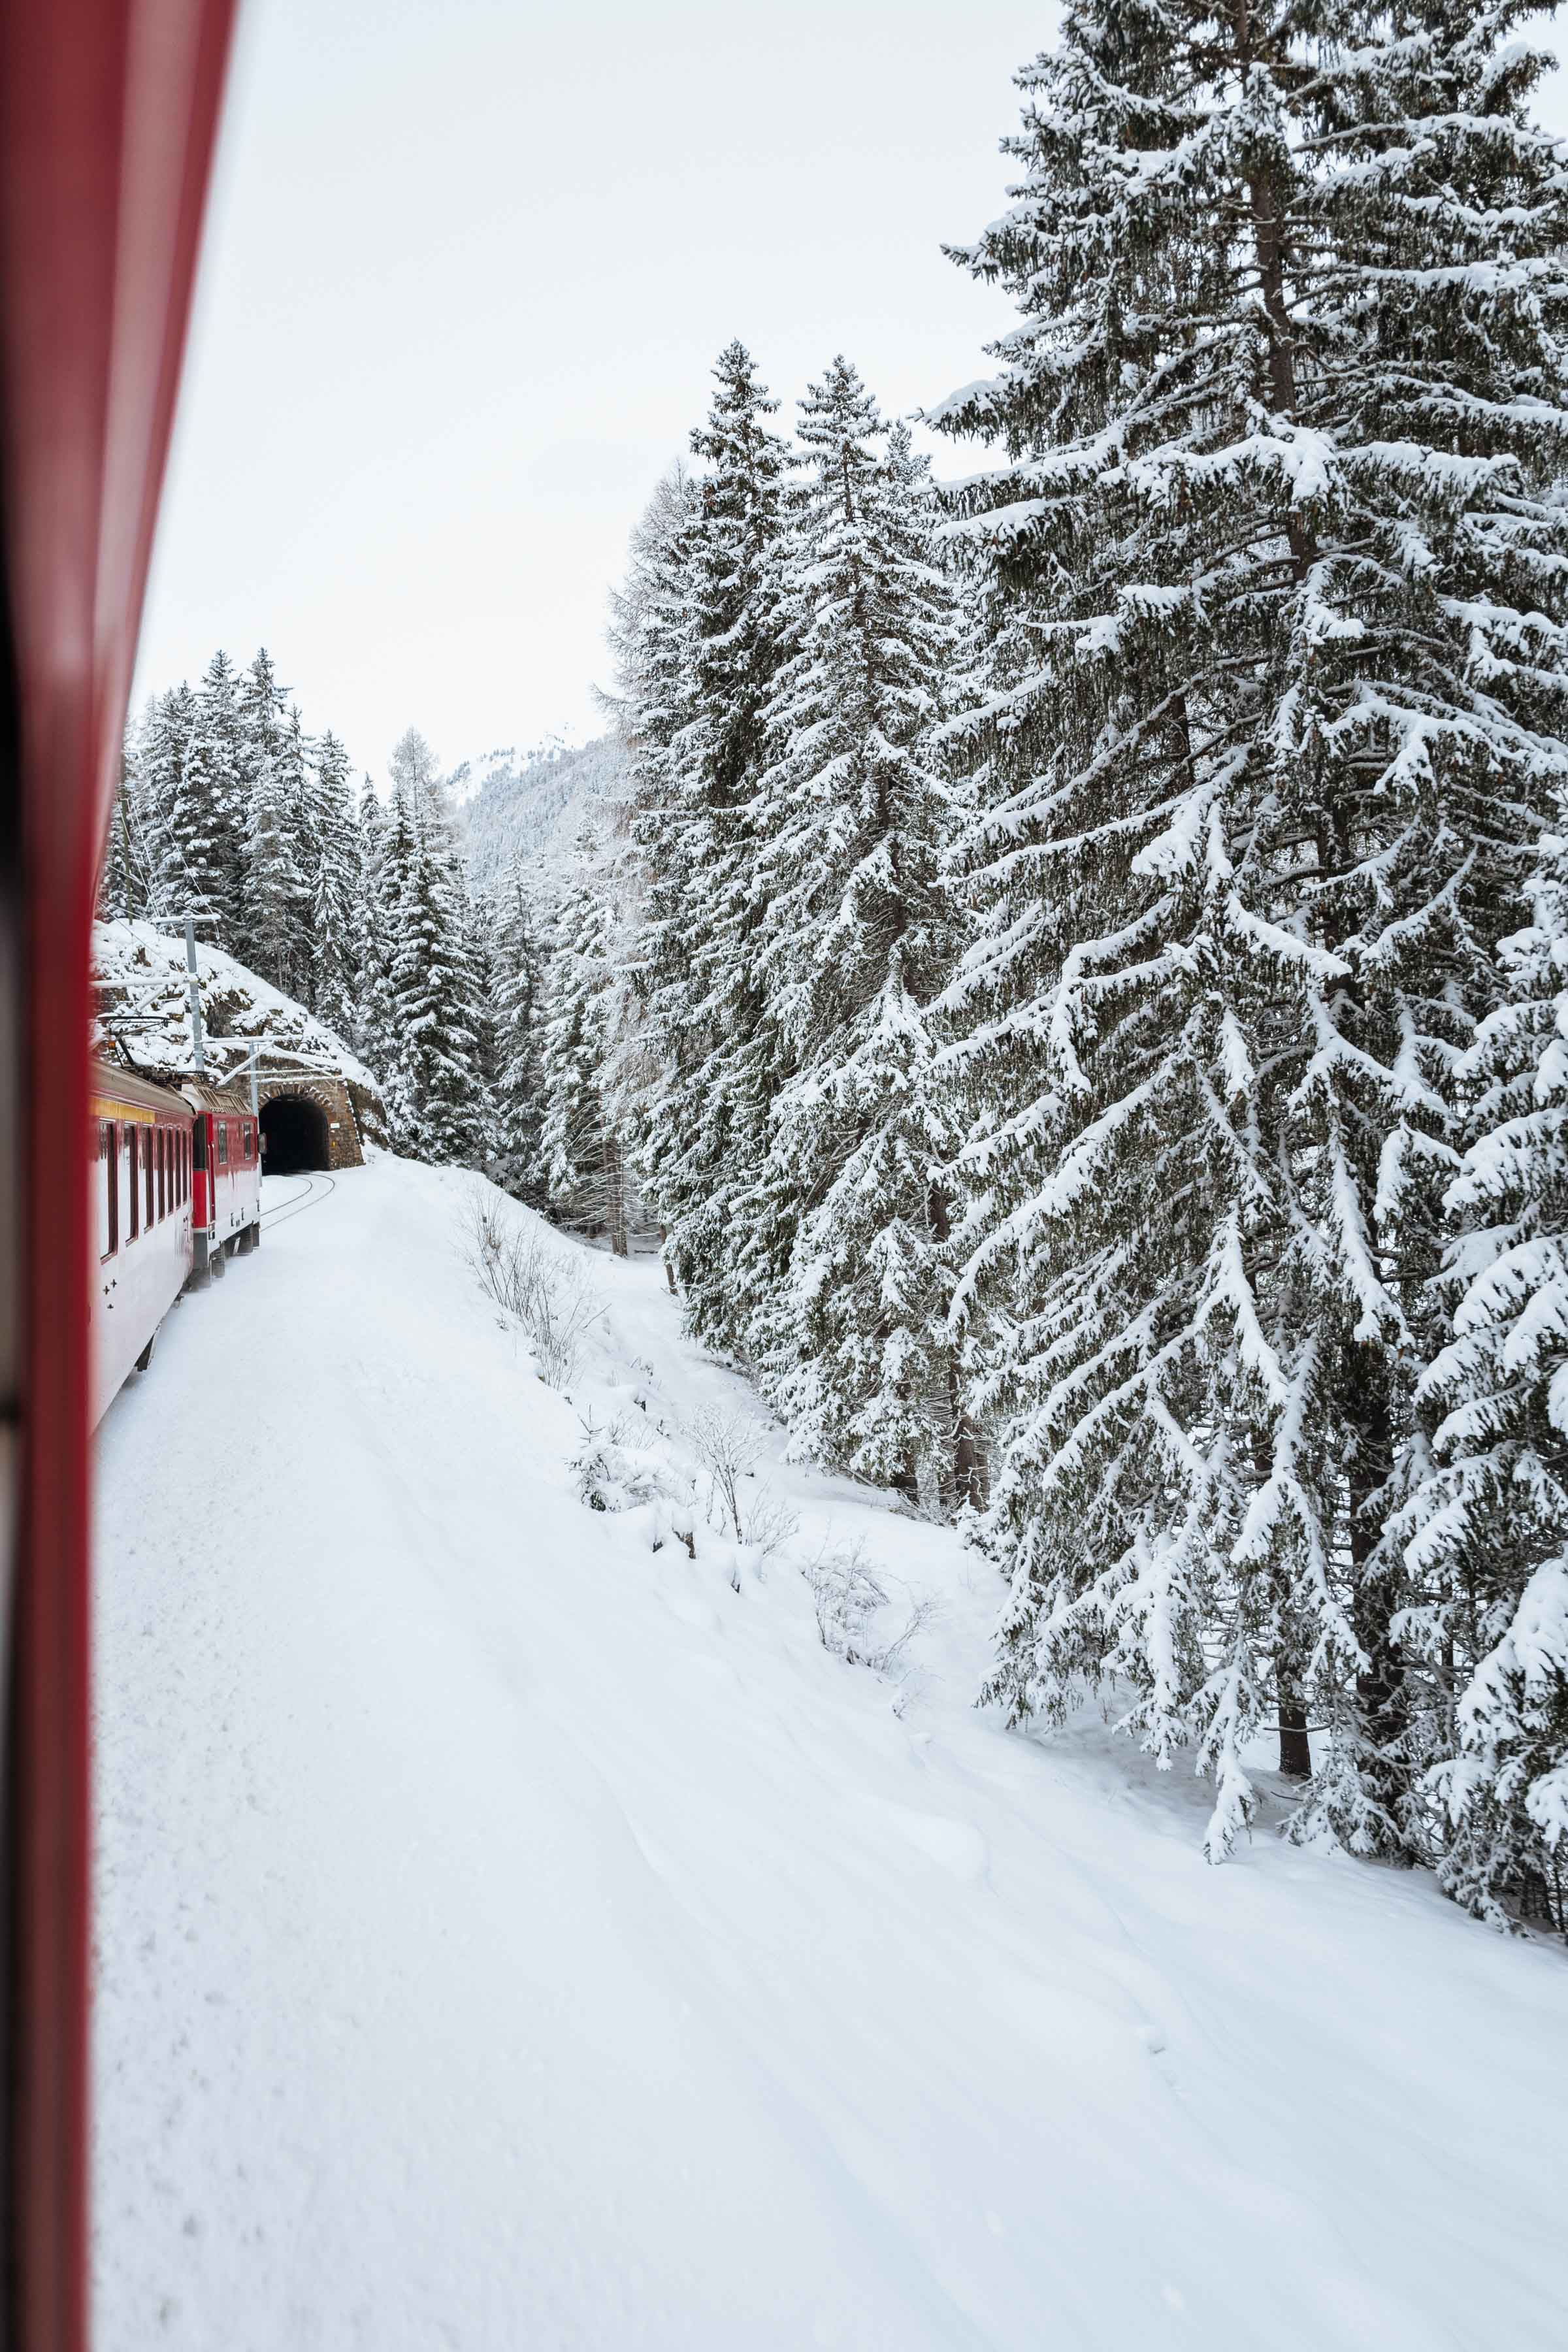 Planning a trip to Switzerland in the winter? Take the train to this unpretentious Swiss ski resort town. Our guide includes travel tips, things to know , the best restaurants, food, and hotels in this unique alpine village. | thetastesf.com #travel #switzerland #winter #alps #train